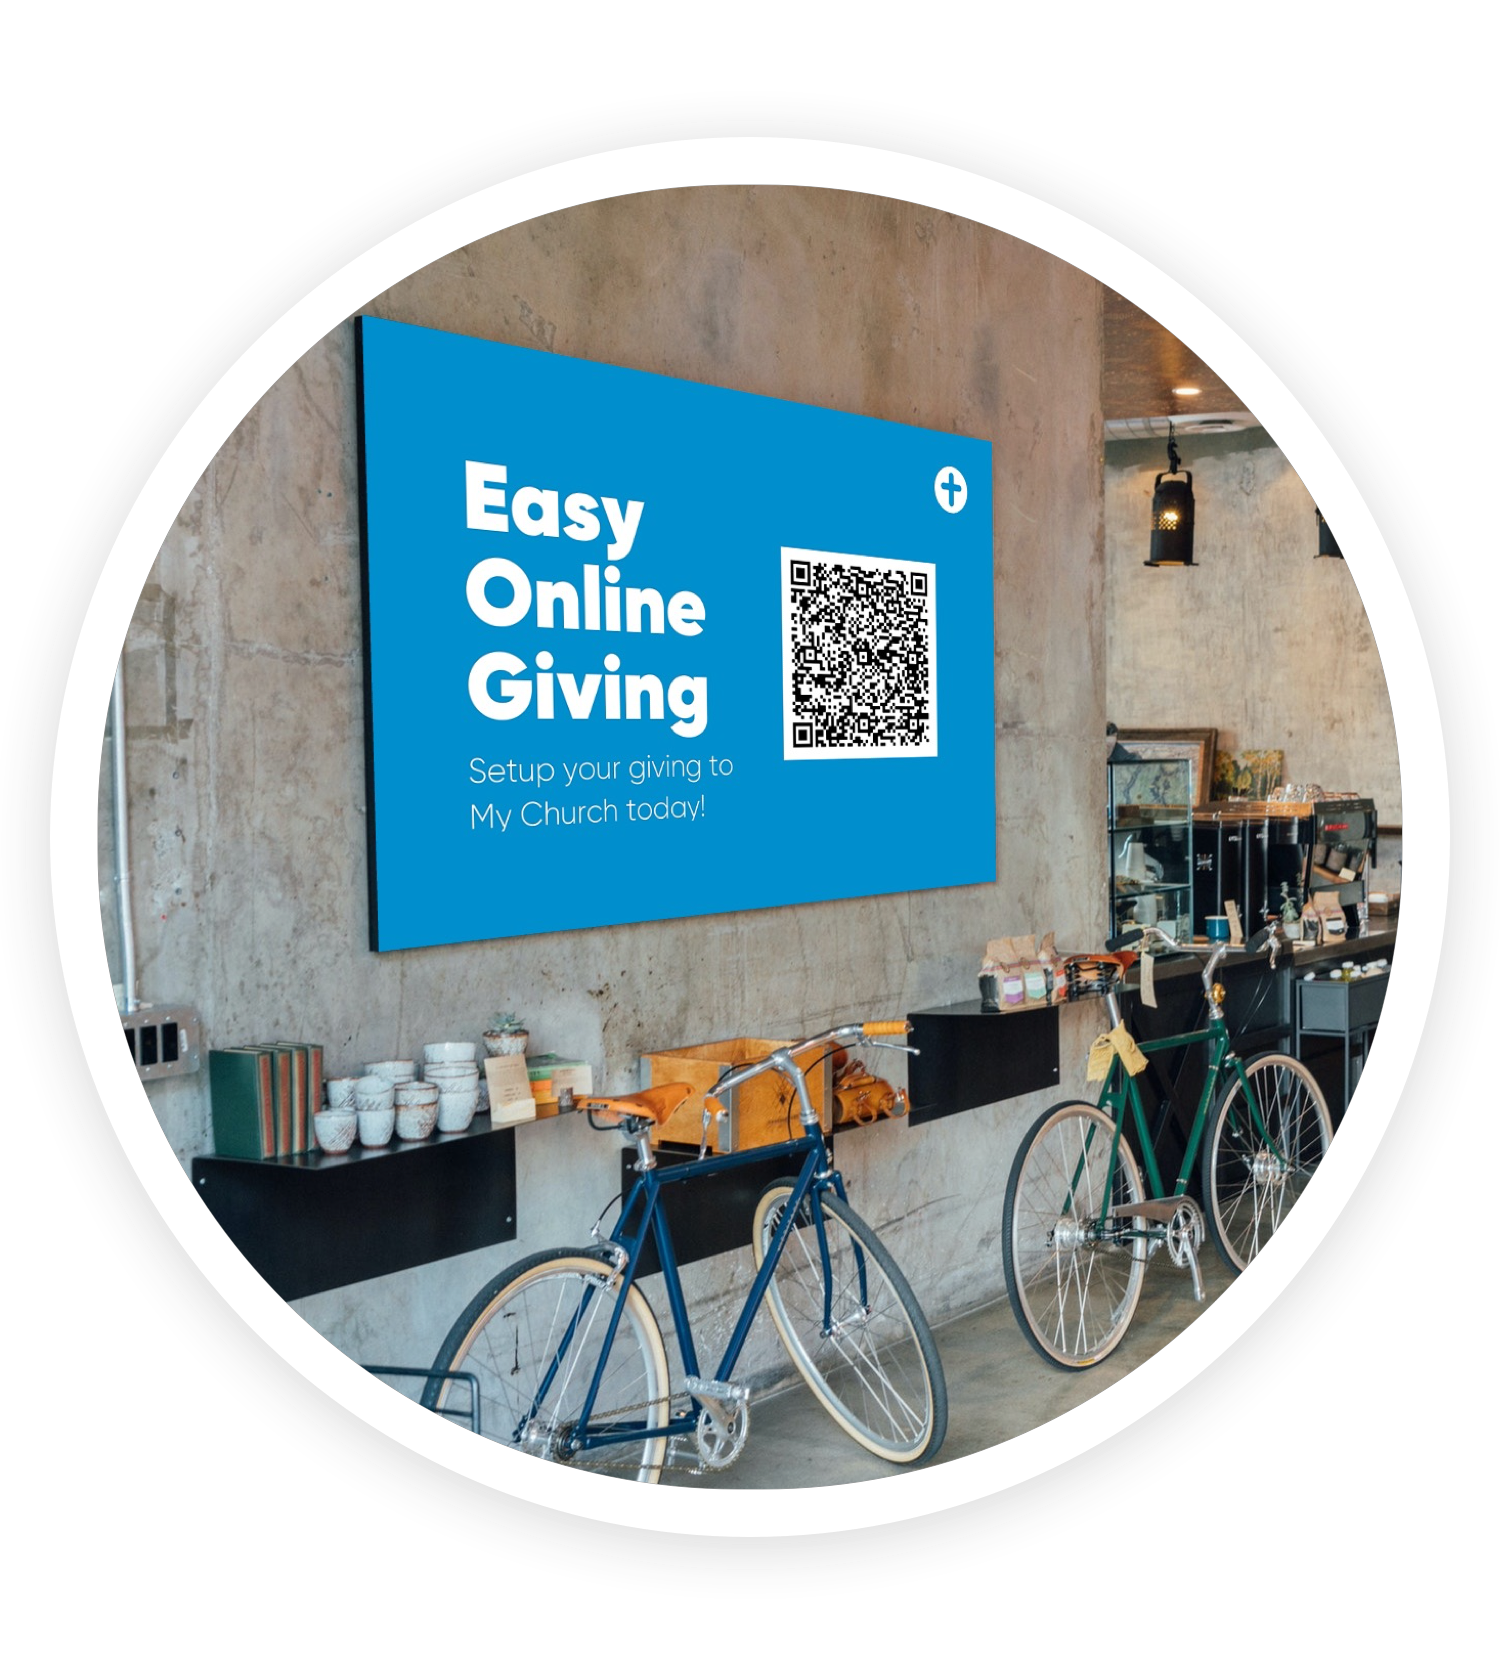 Image of lobby with a billboard promoting giving using a QR code